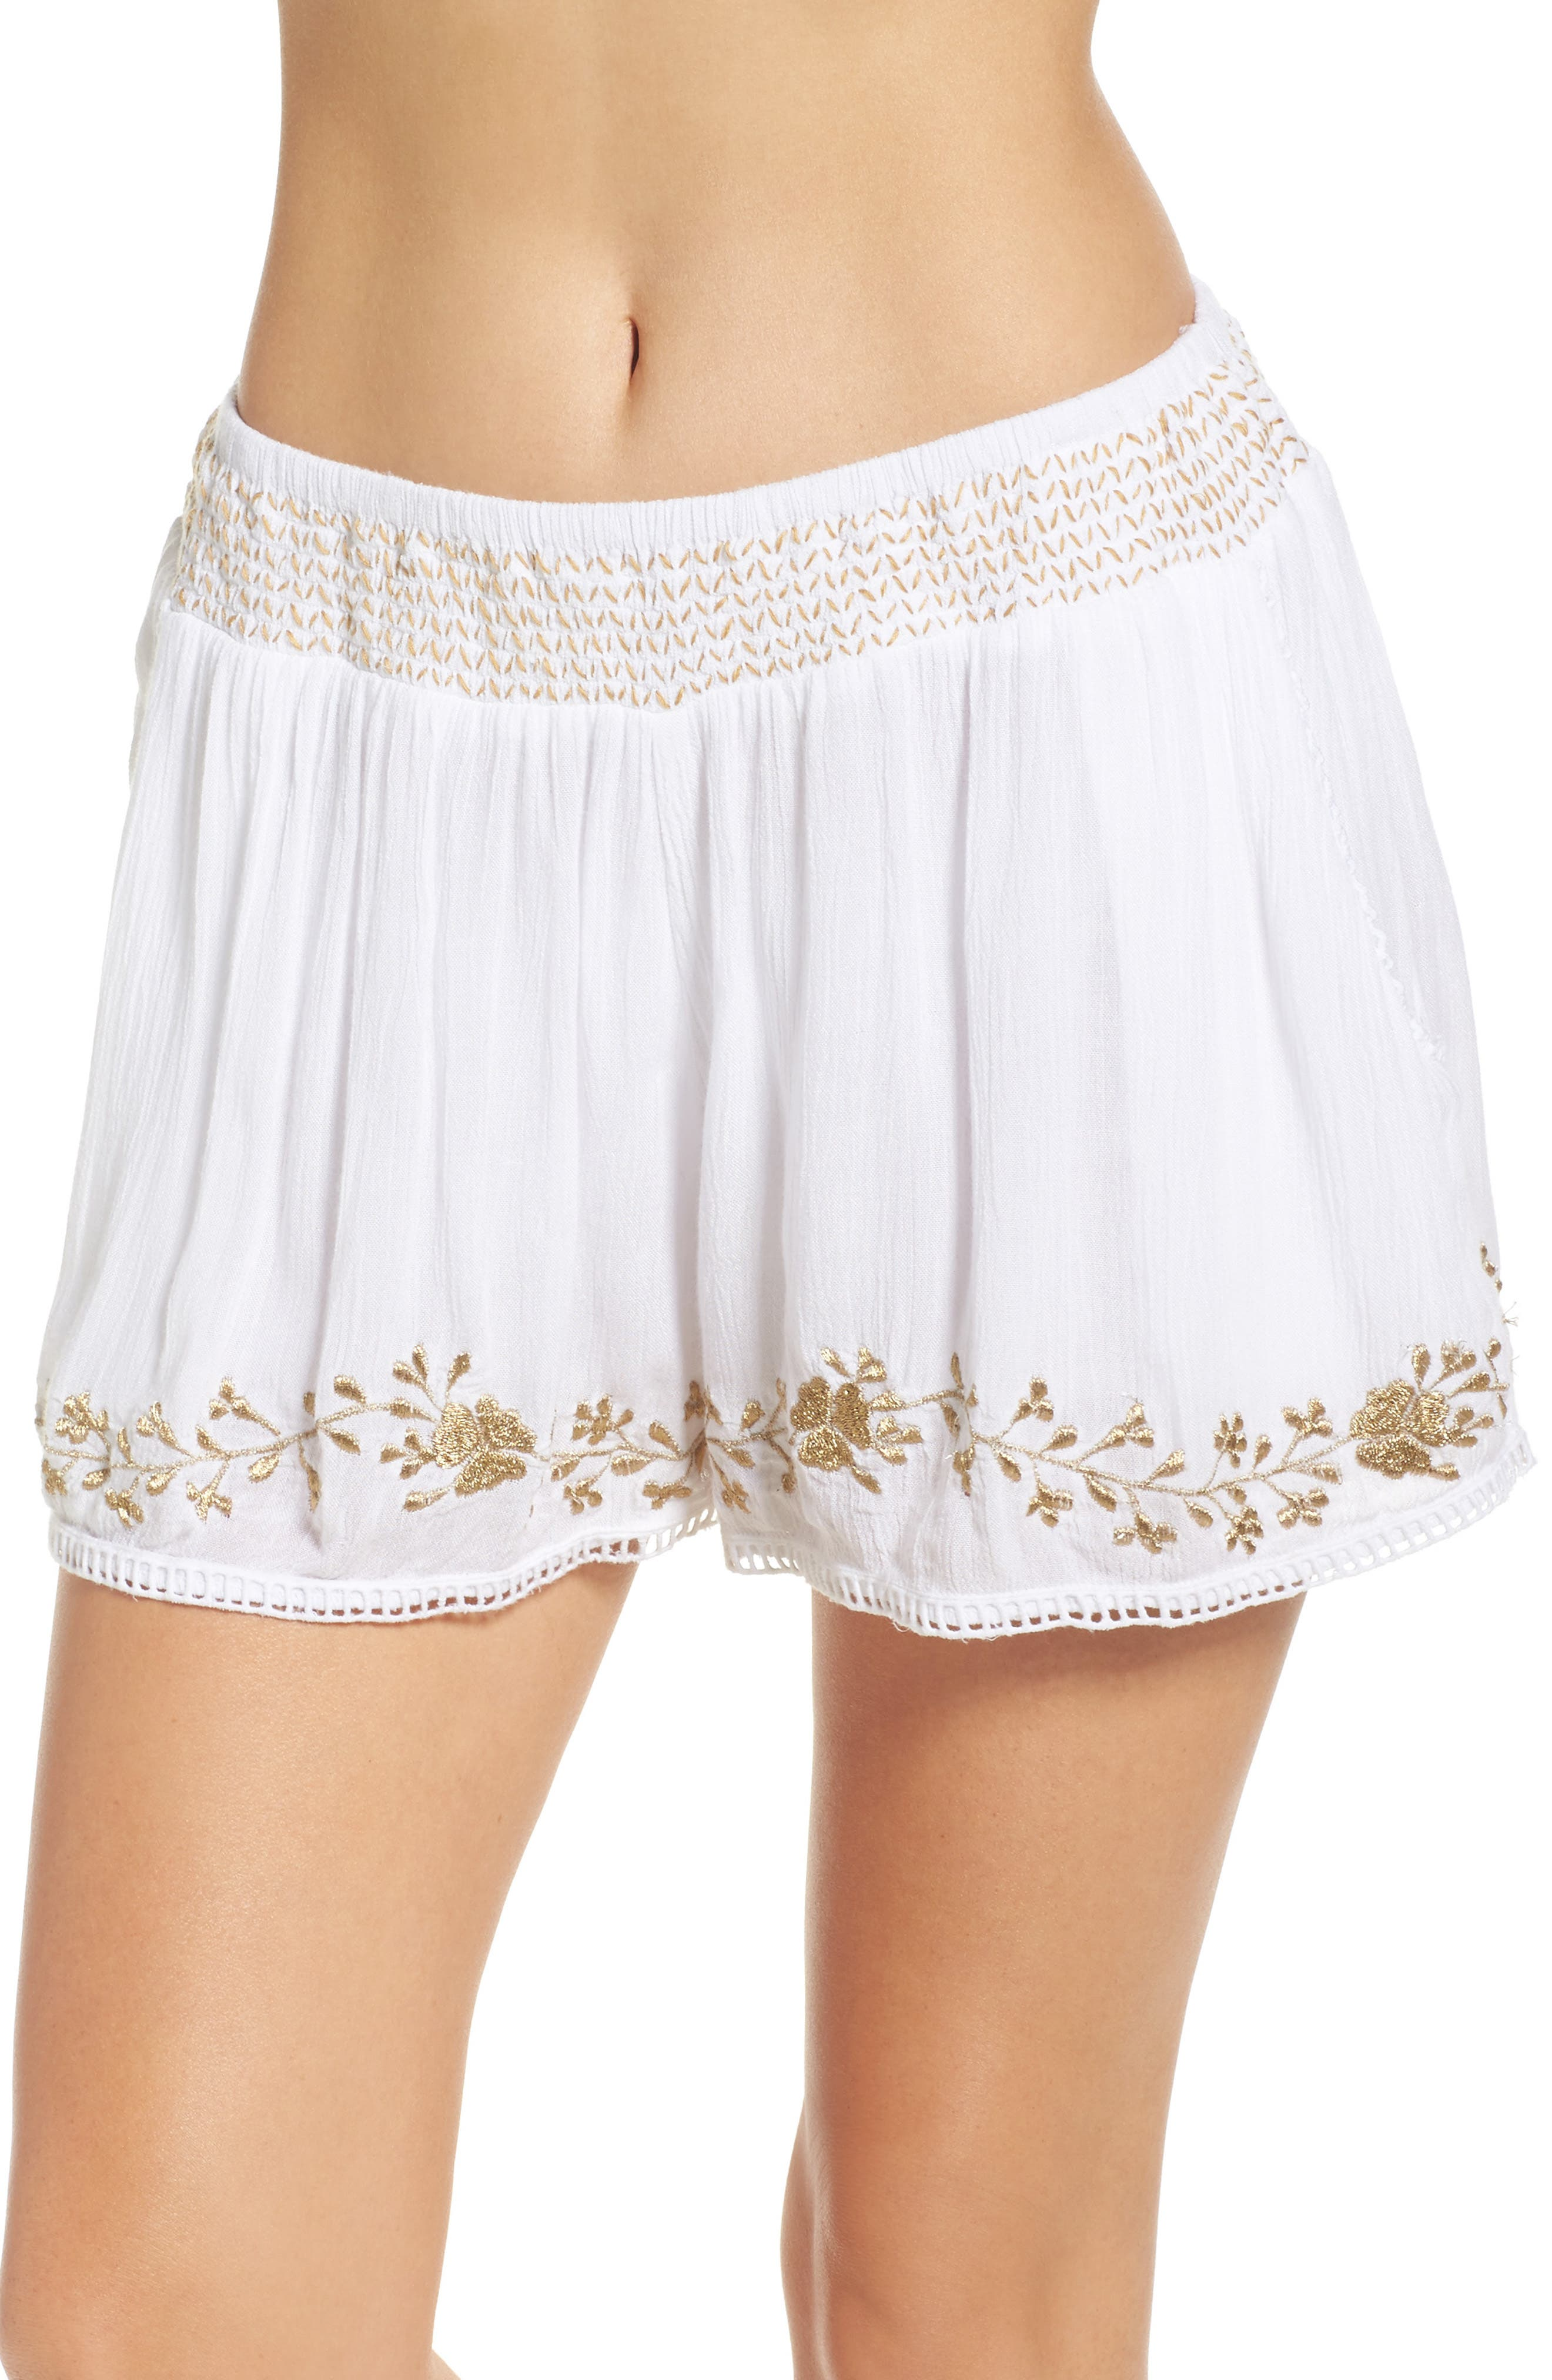 Muche at Muchette Cleopatra Shorts,                             Main thumbnail 1, color,                             100